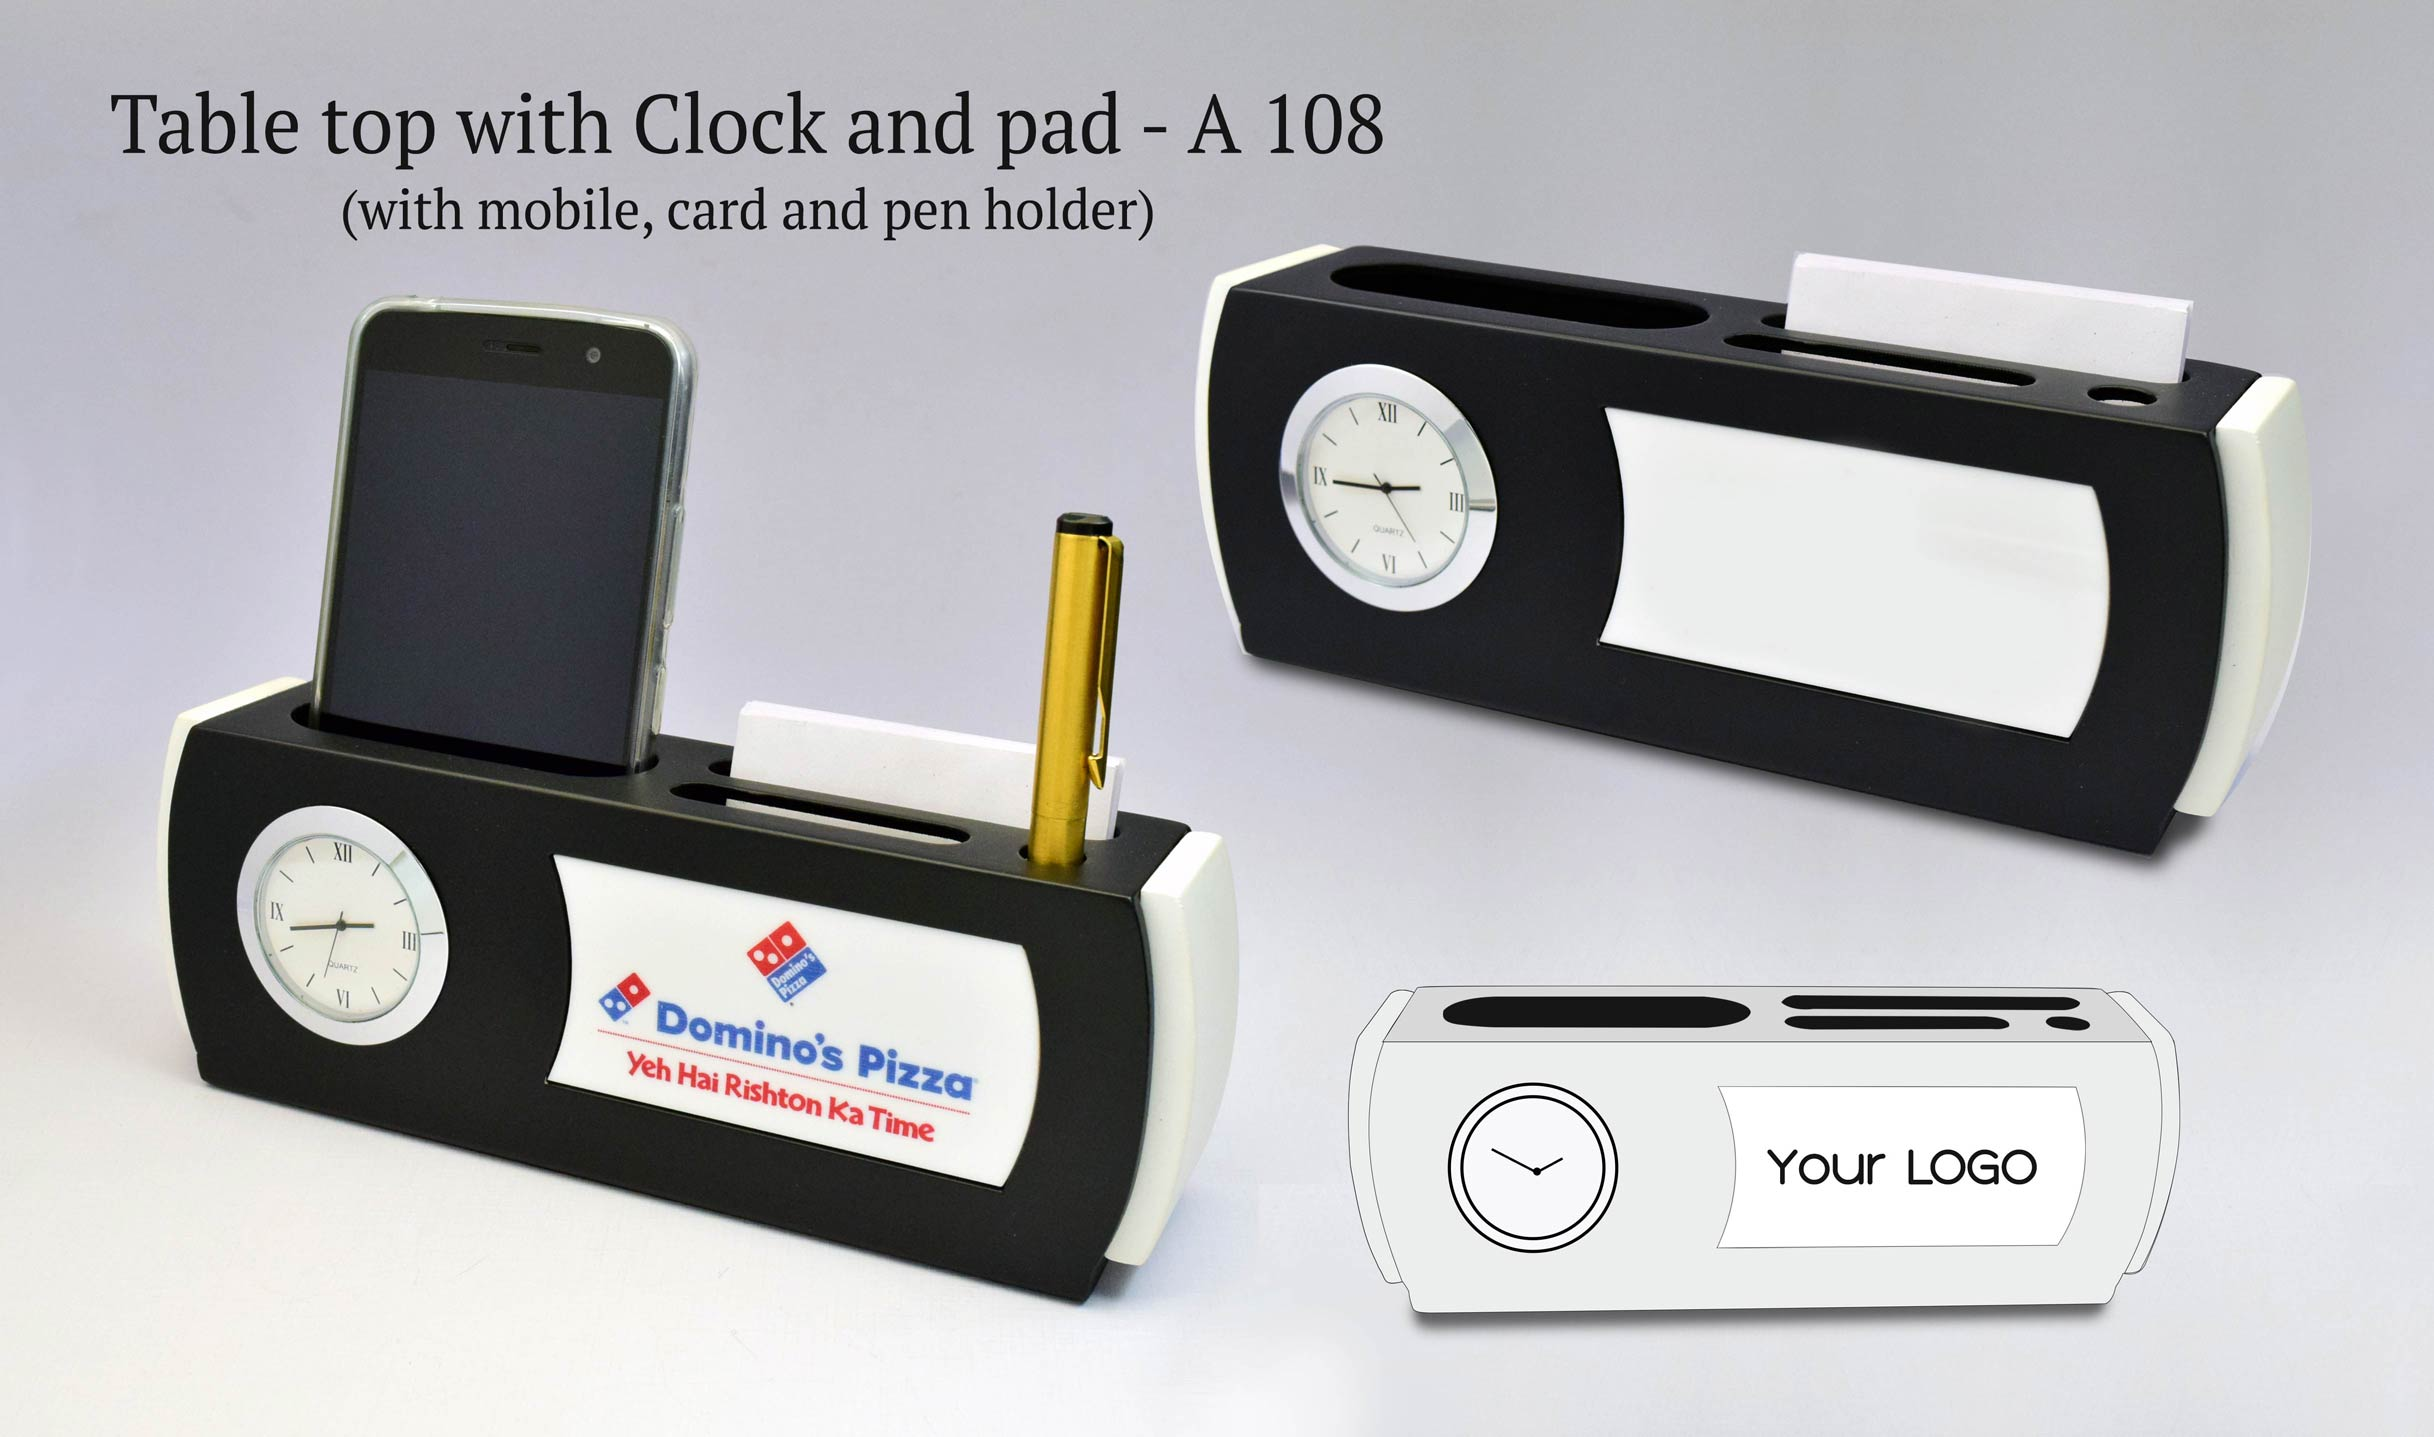 A108 - Table top with Clock and pad (with mobile,card and pen holder)